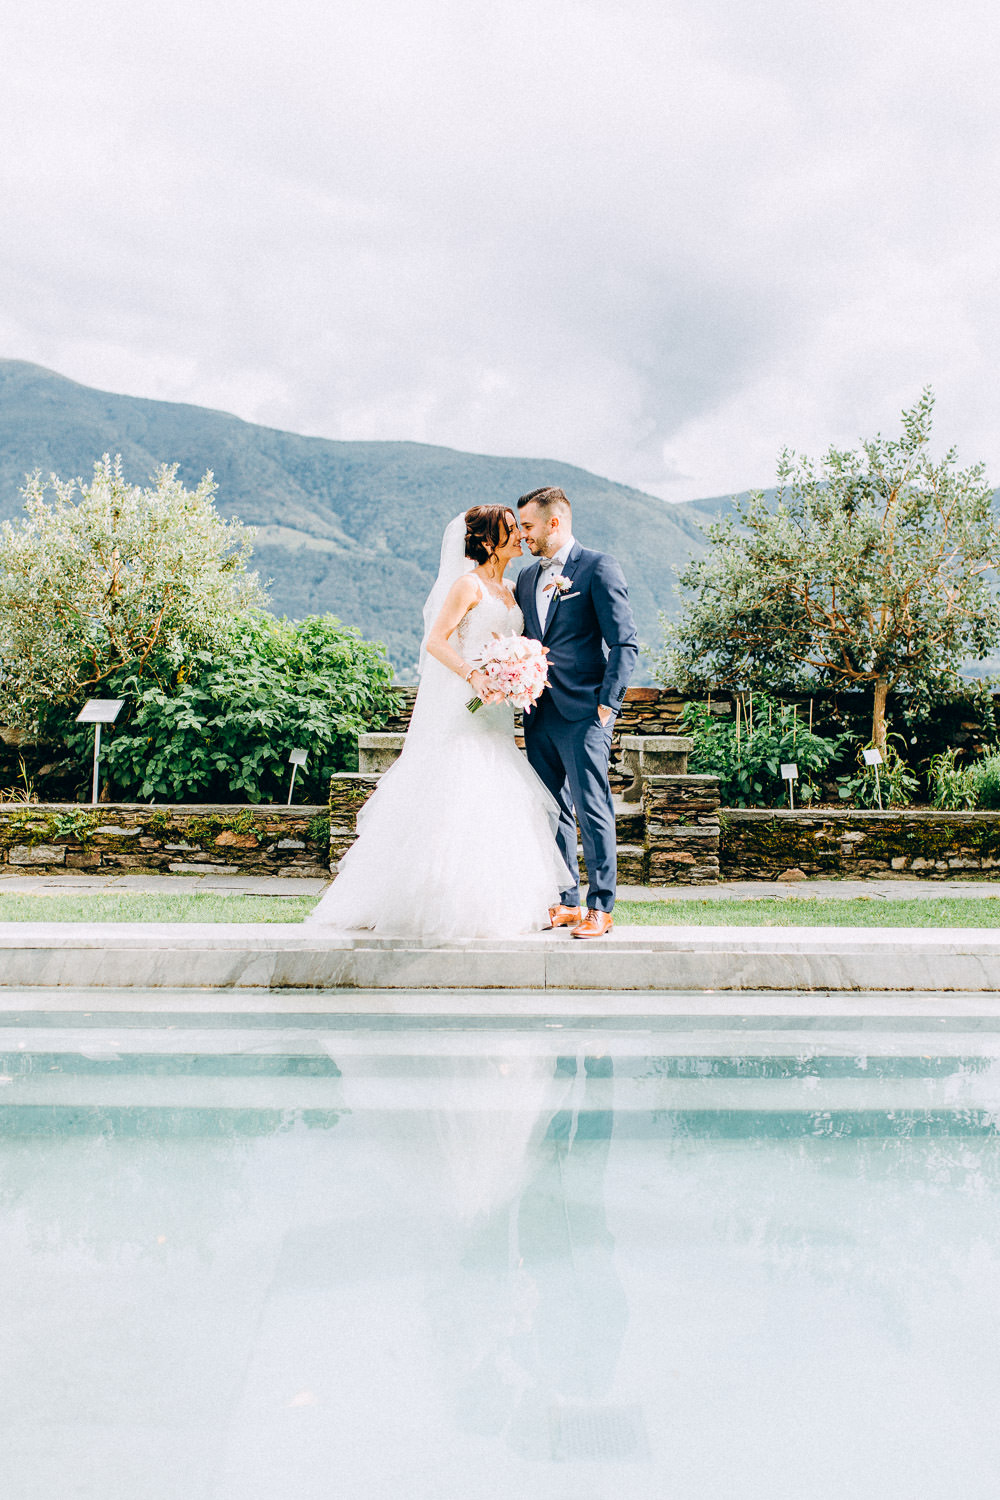 davidandkathrin-com-ticino-brissago-wedding-photographer-116